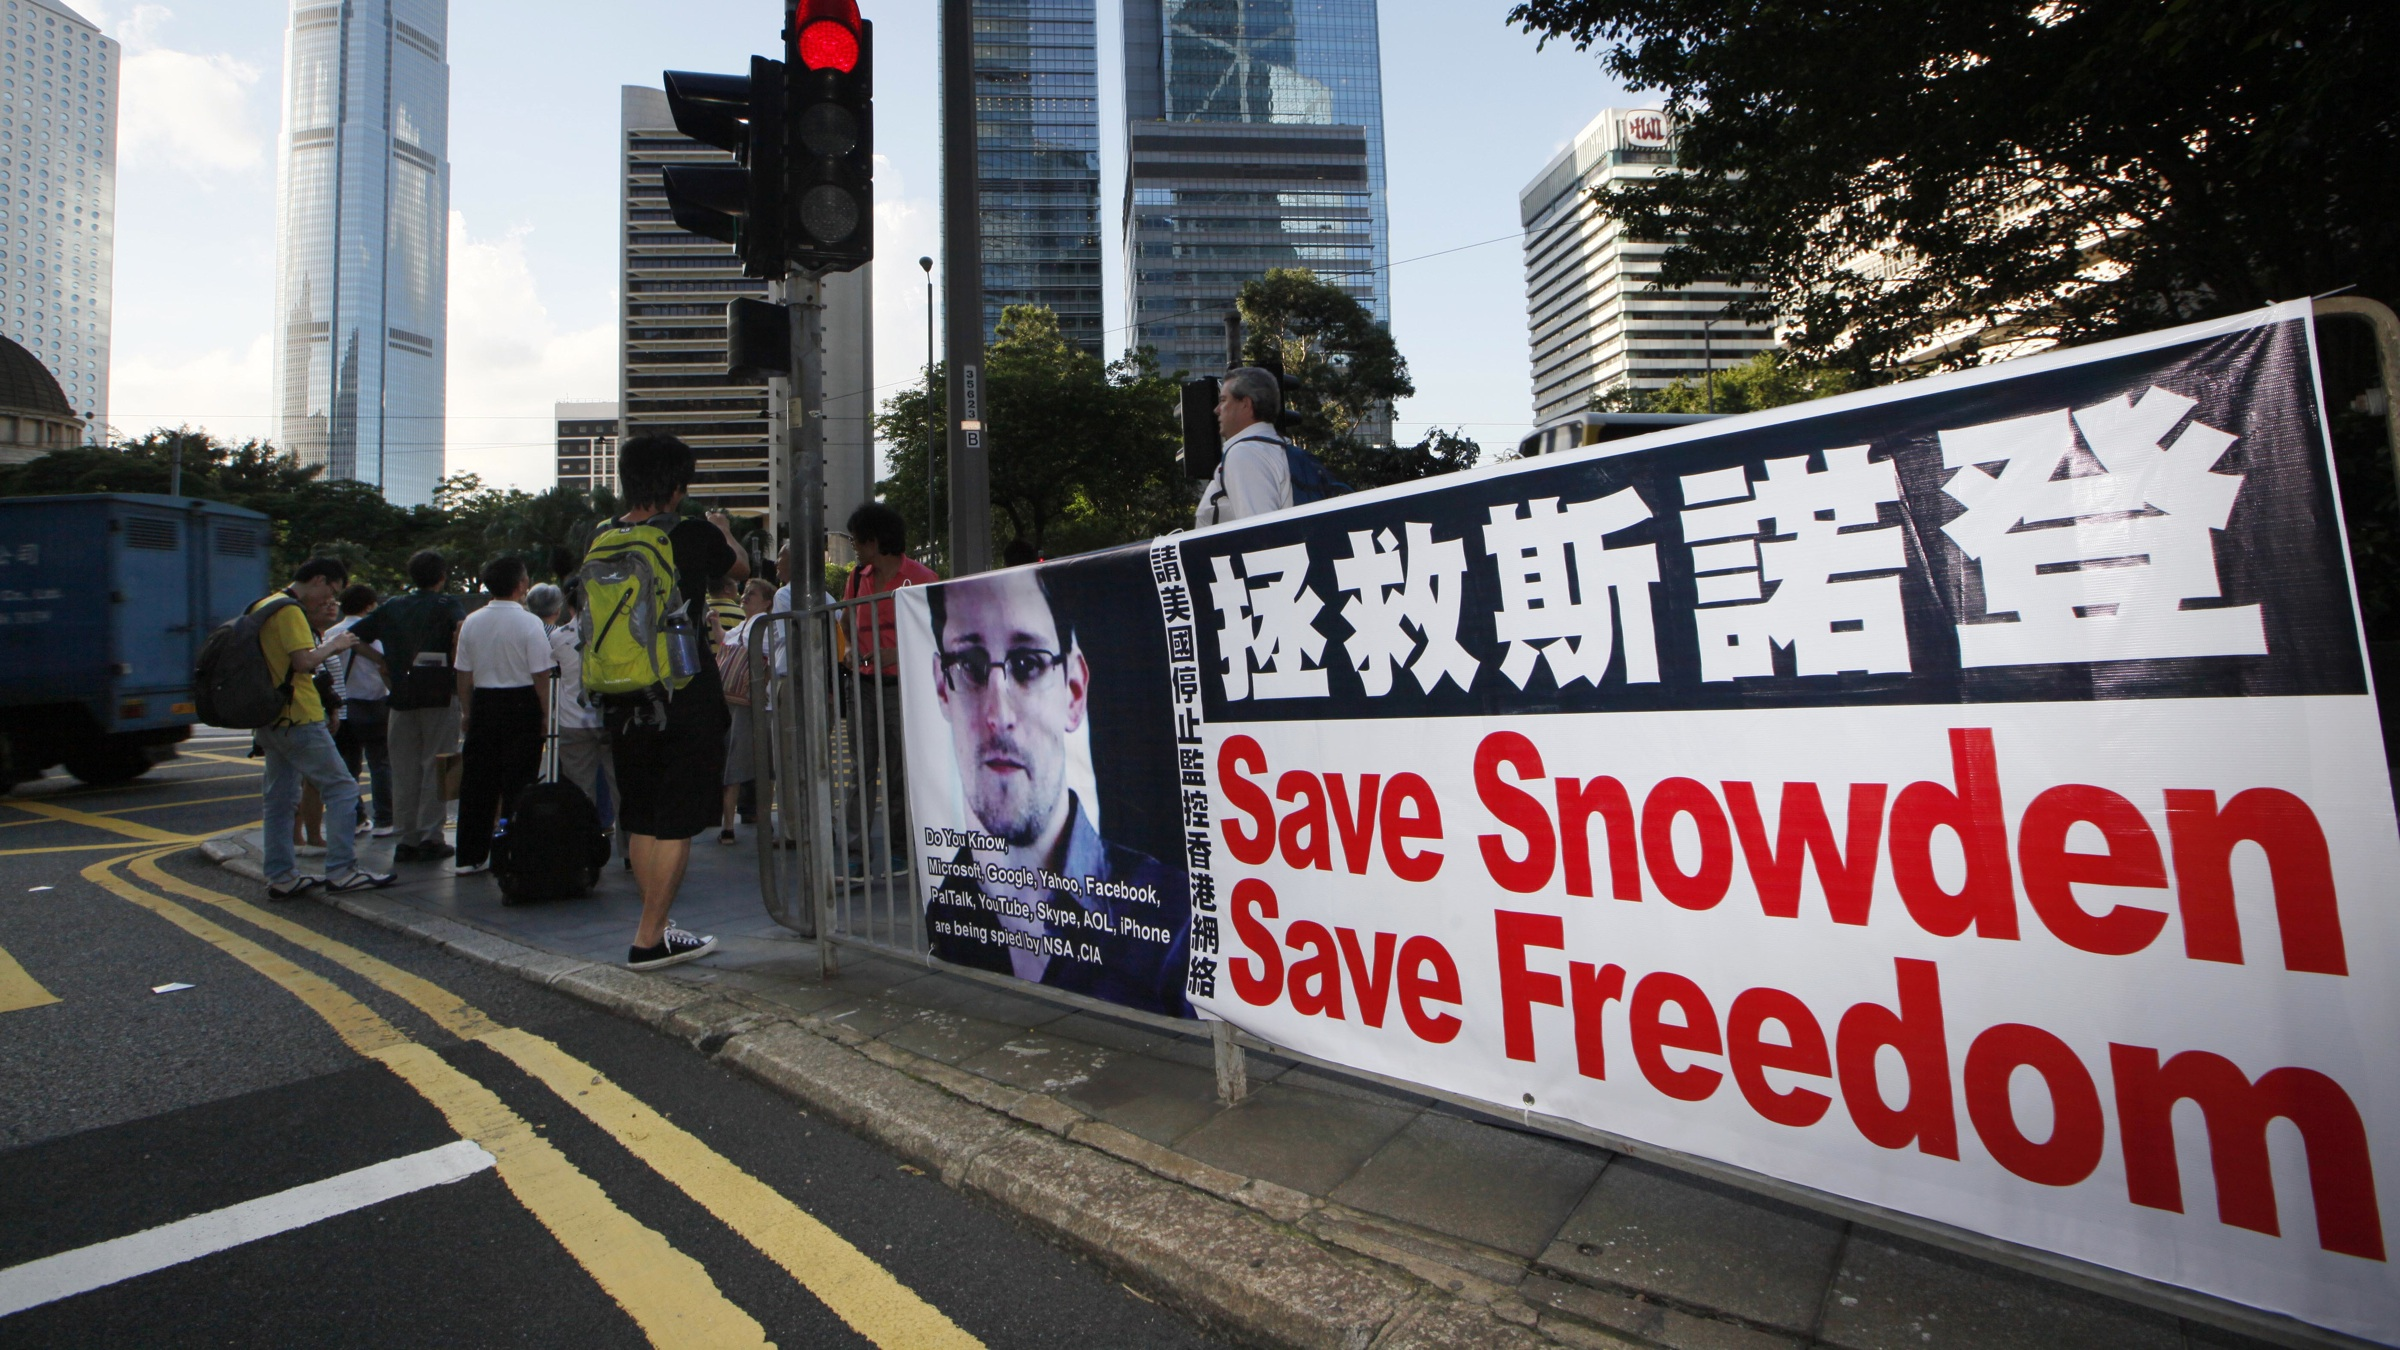 A banner supporting Edward Snowden, a former CIA employee who leaked top-secret documents about sweeping U.S. surveillance programs, is displayed at Central, Hong Kong's business district, Tuesday, June 18, 2013. President Barack Obama defended top secret National Security Agency spying programs as legal in a lengthy interview, and called them transparent — even though they are authorized in secret.  (AP Photo/Kin Cheung)